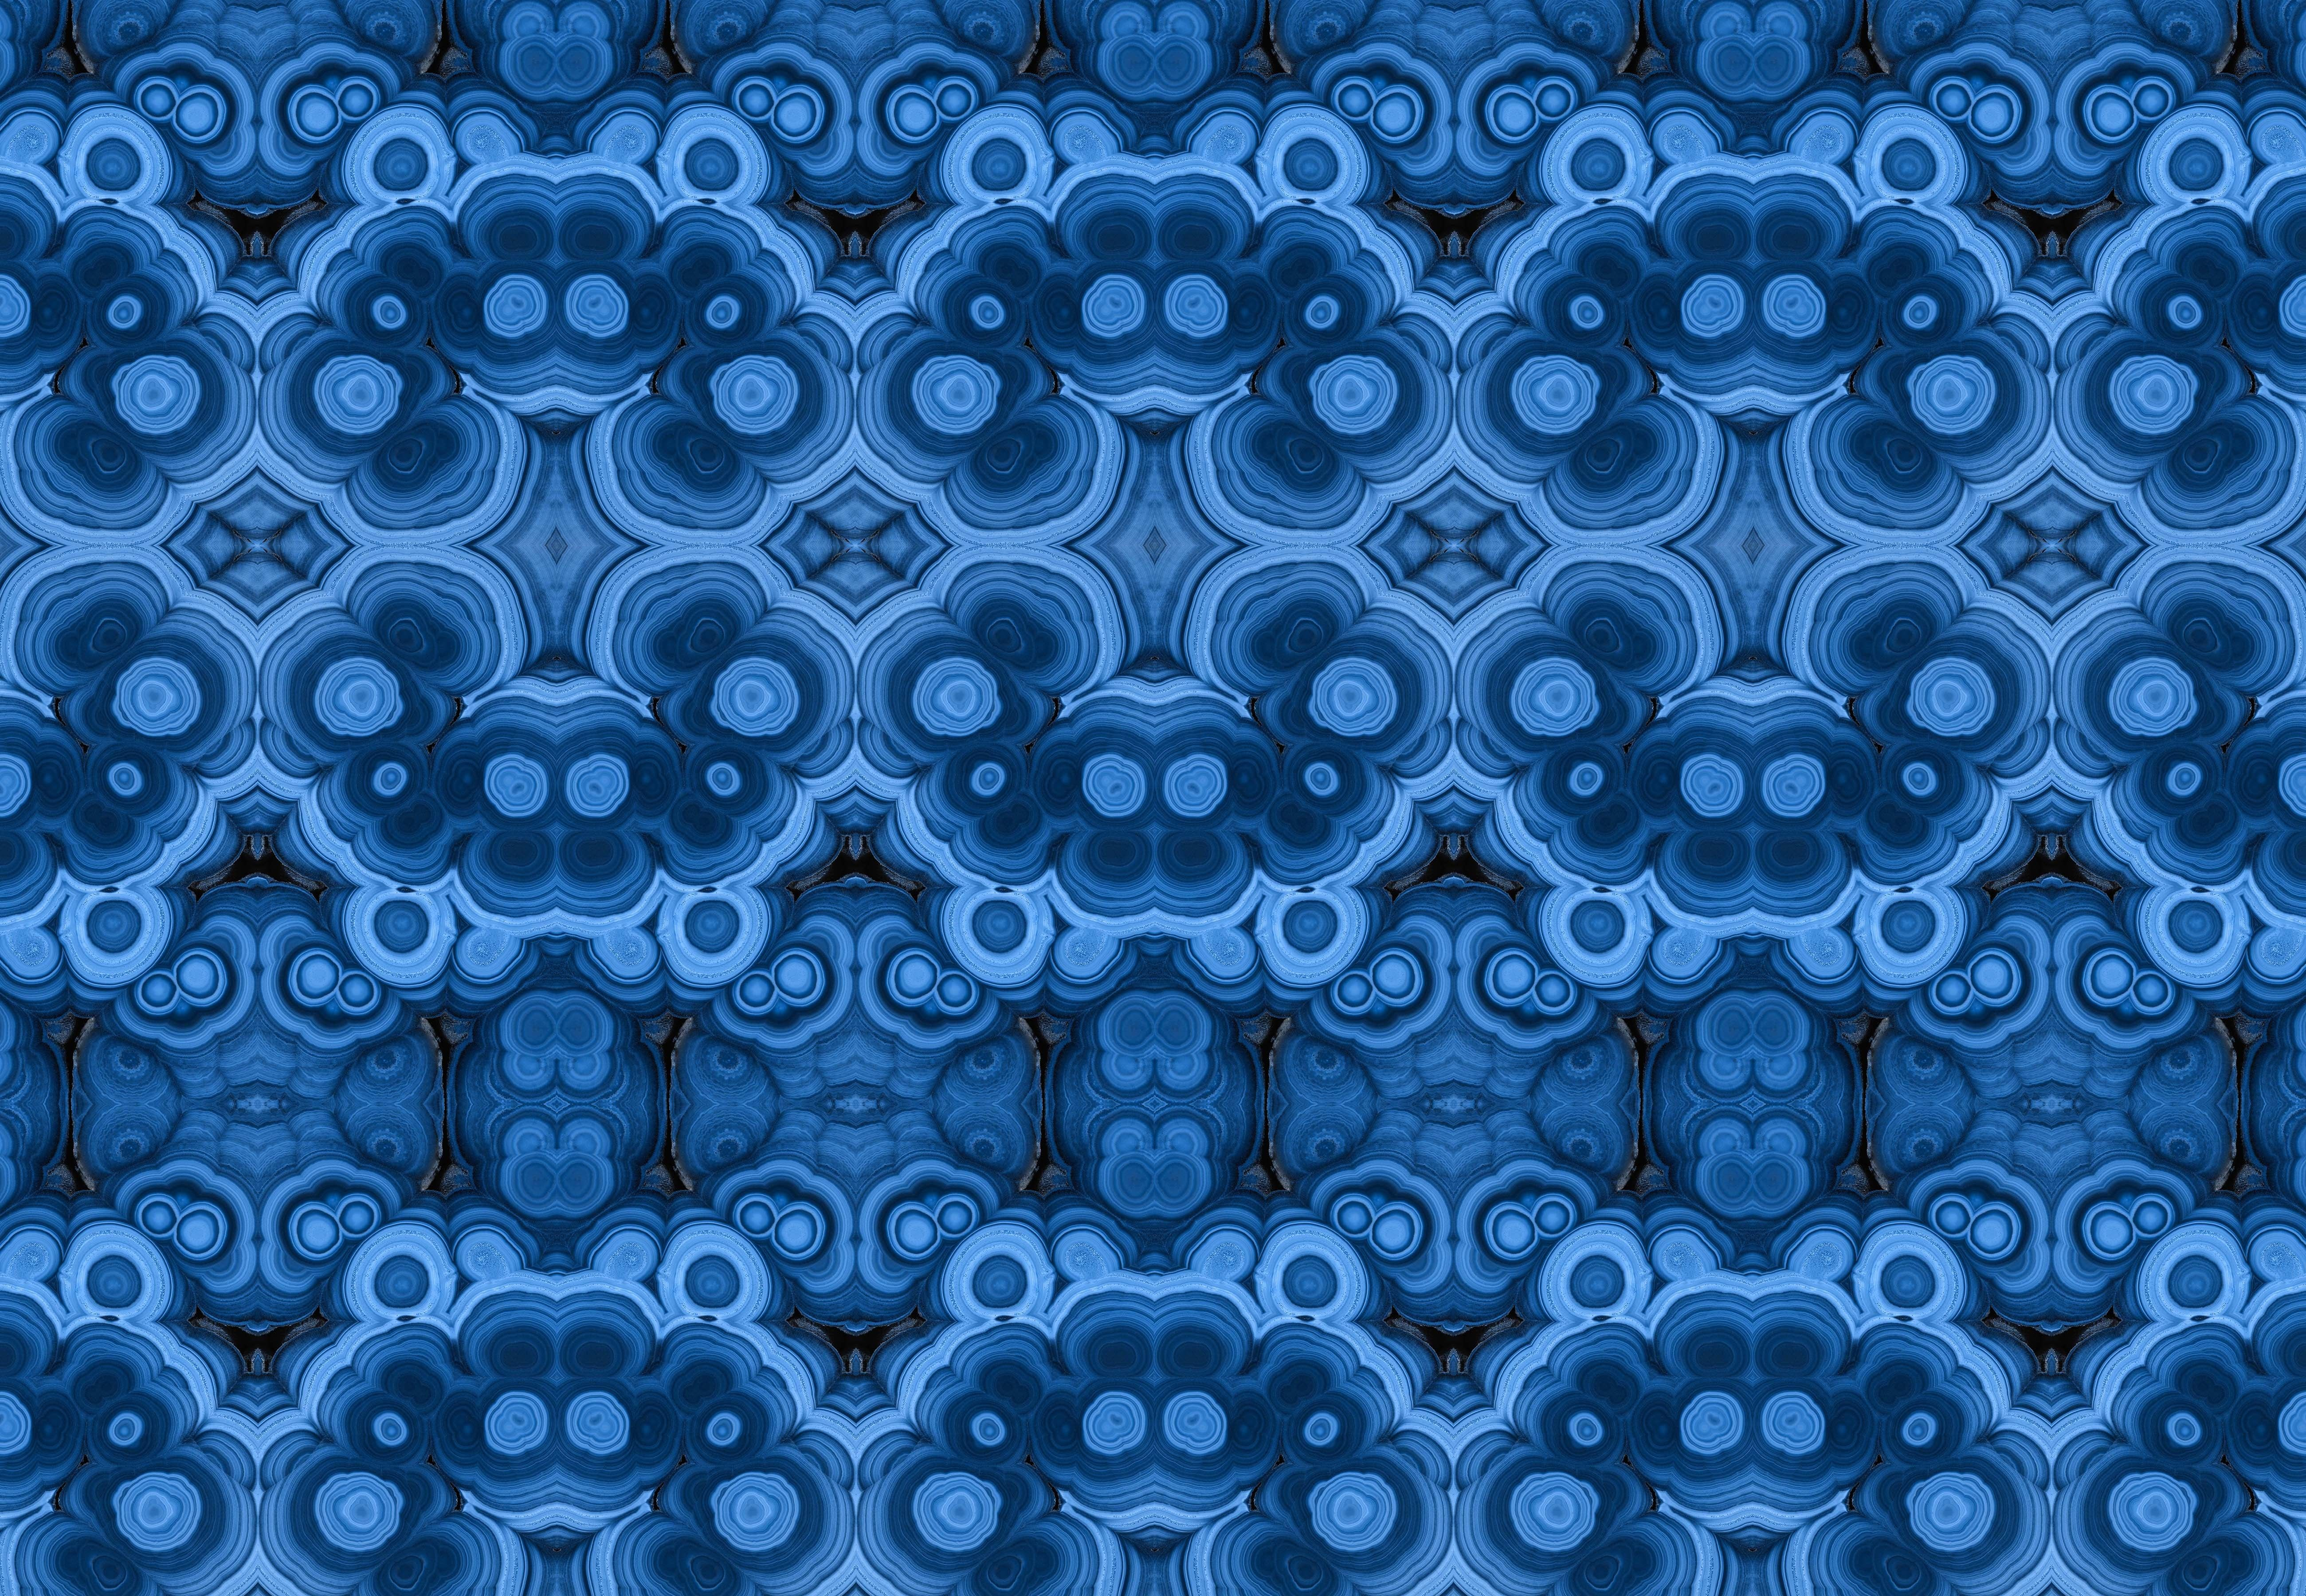 Buy Stone Wall Coverings   Blue Outswirl By Brenda Houston   Quick Ship  Designer Wallpaper From